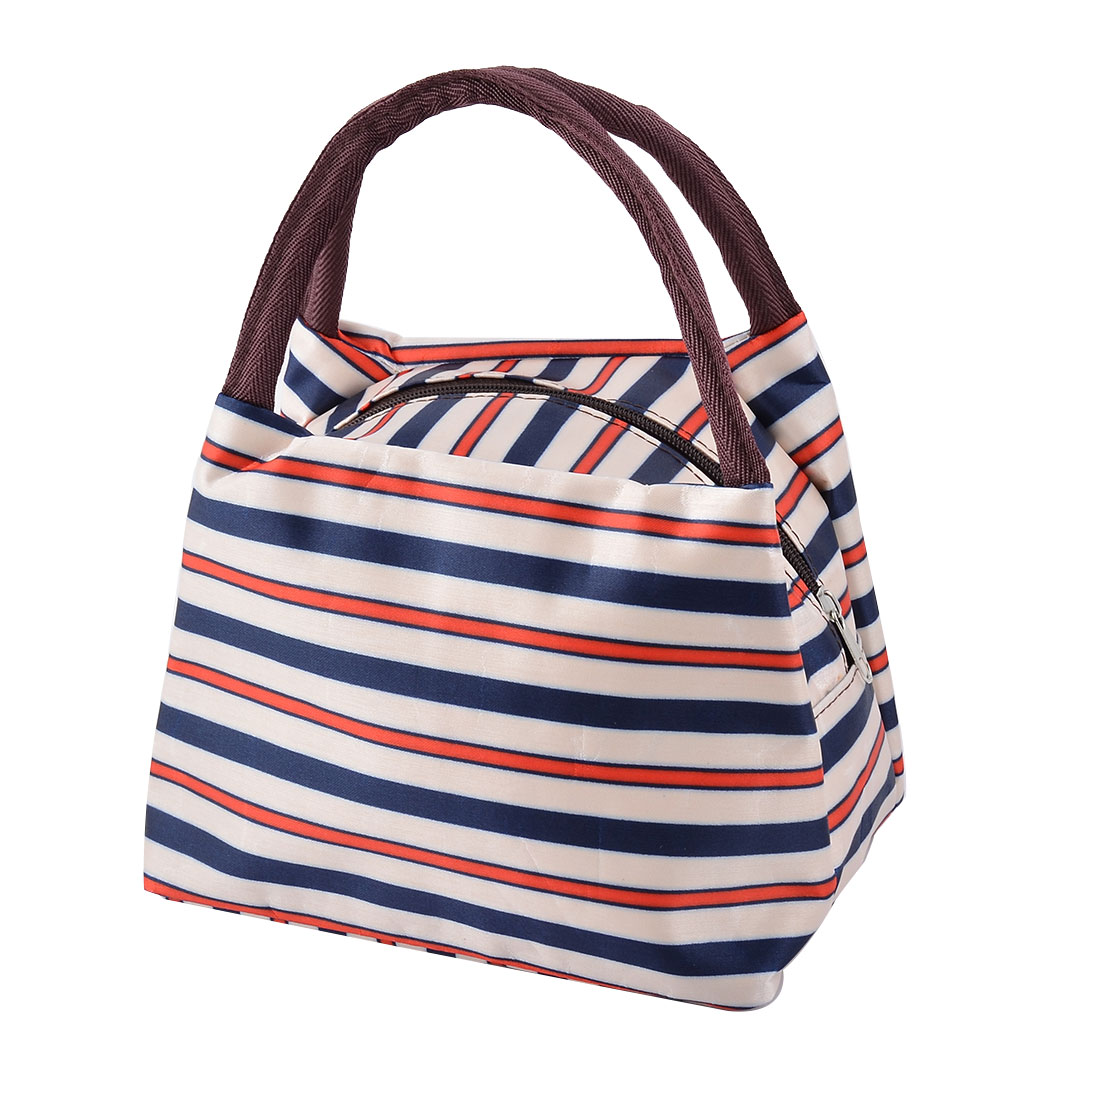 Picnic Travel Linen Cotton Stripe Pattern Dinner Holder Cooler Pouch Tote Bag